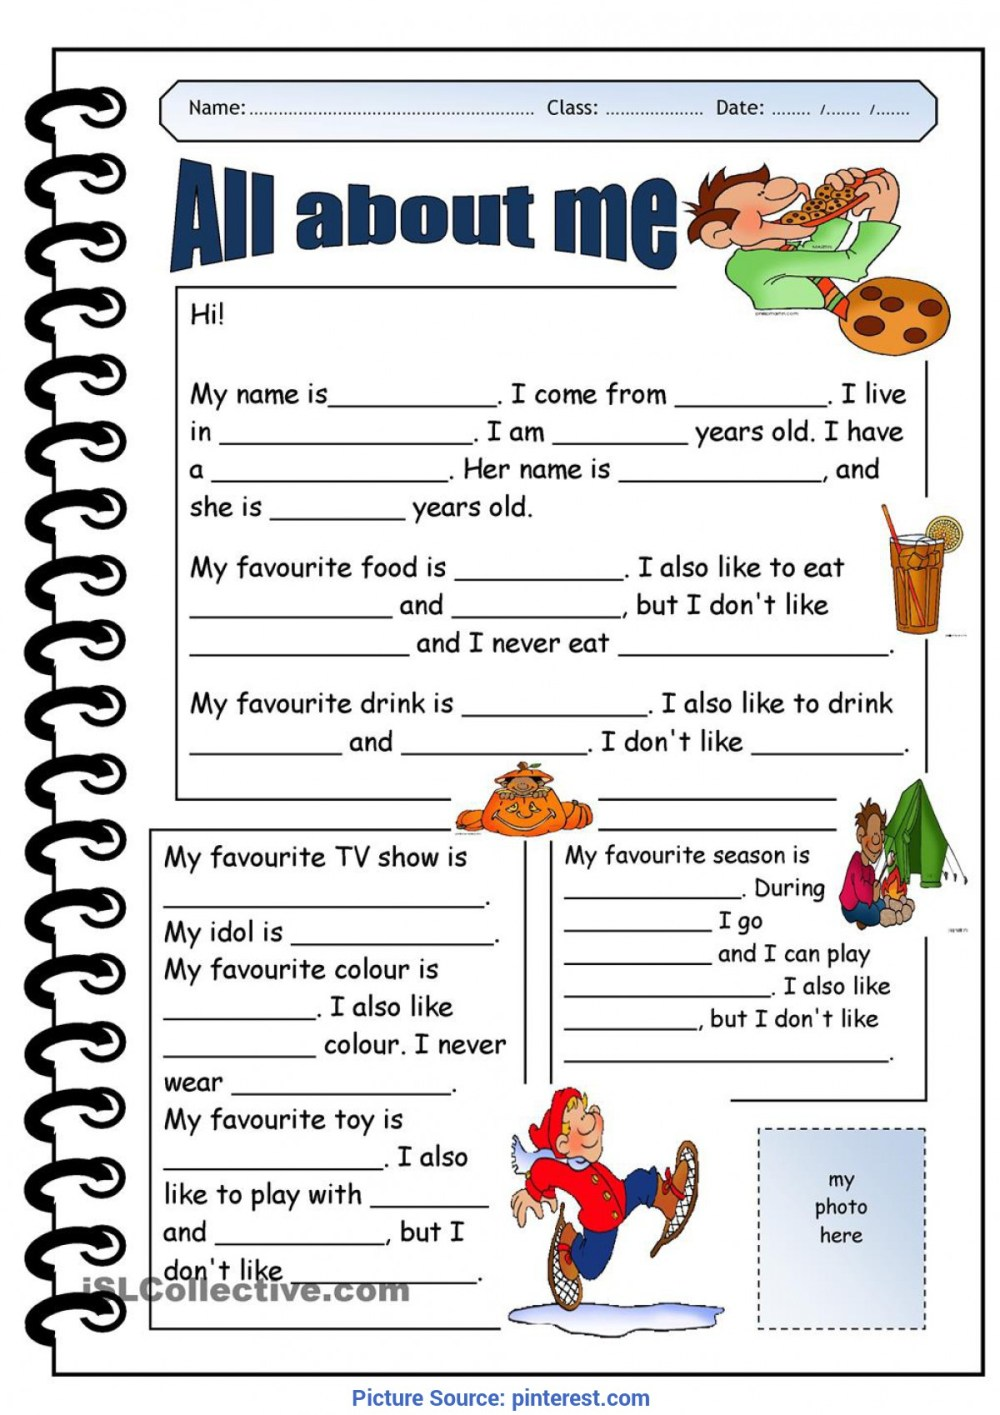 medium resolution of All About Me Worksheet For Middle School Students - Promotiontablecovers